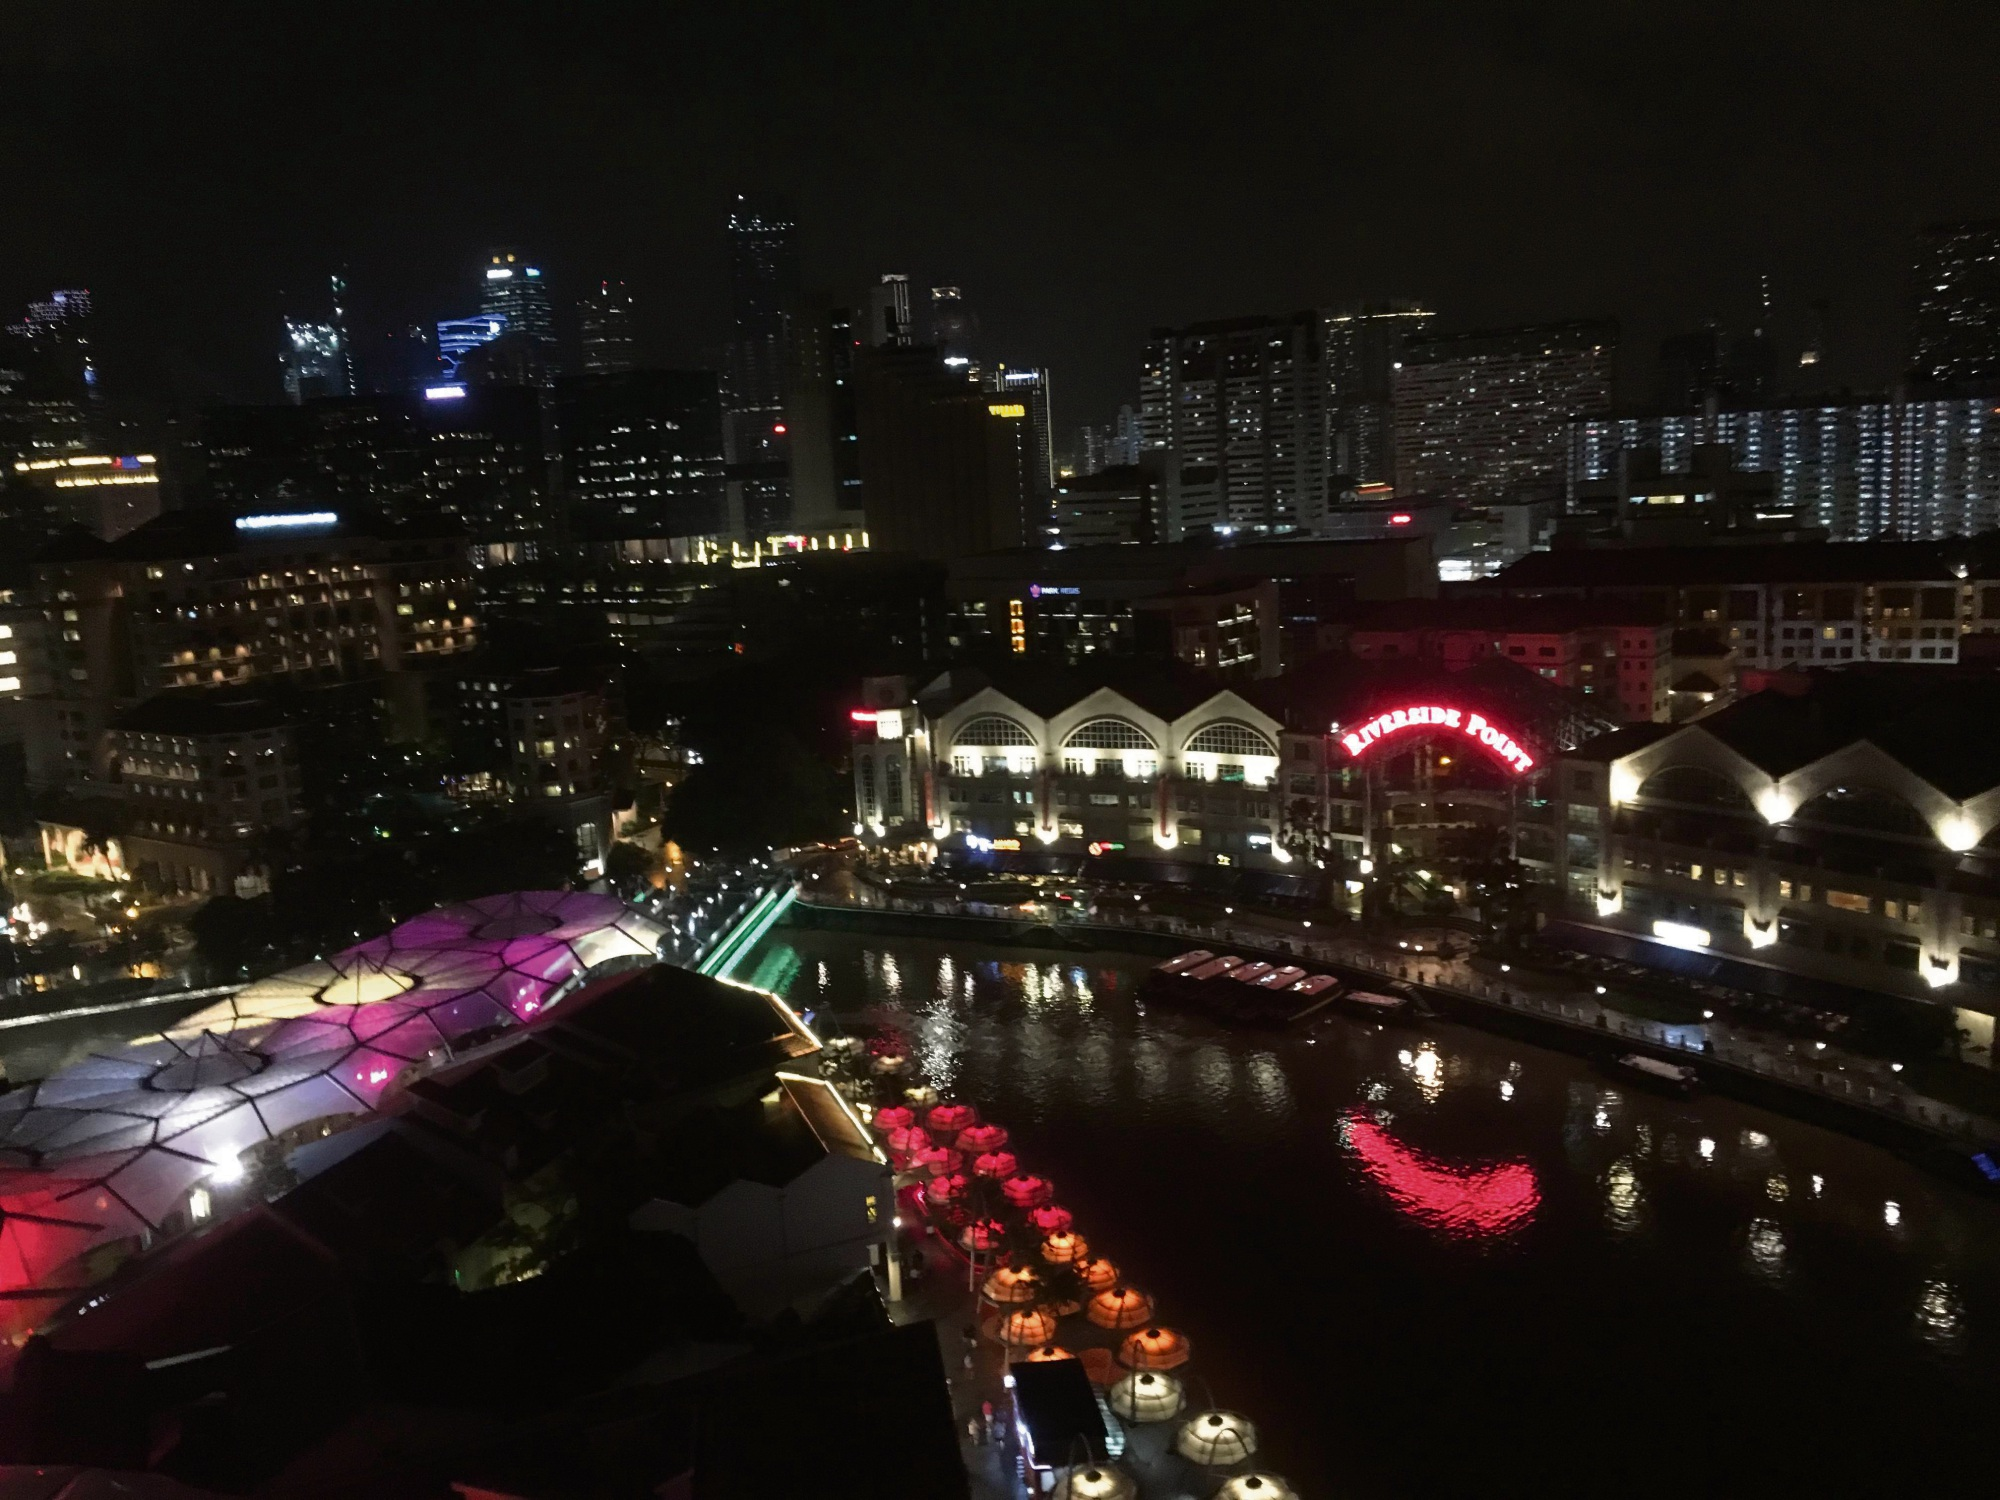 Singapore fits the bill for memorable family holiday